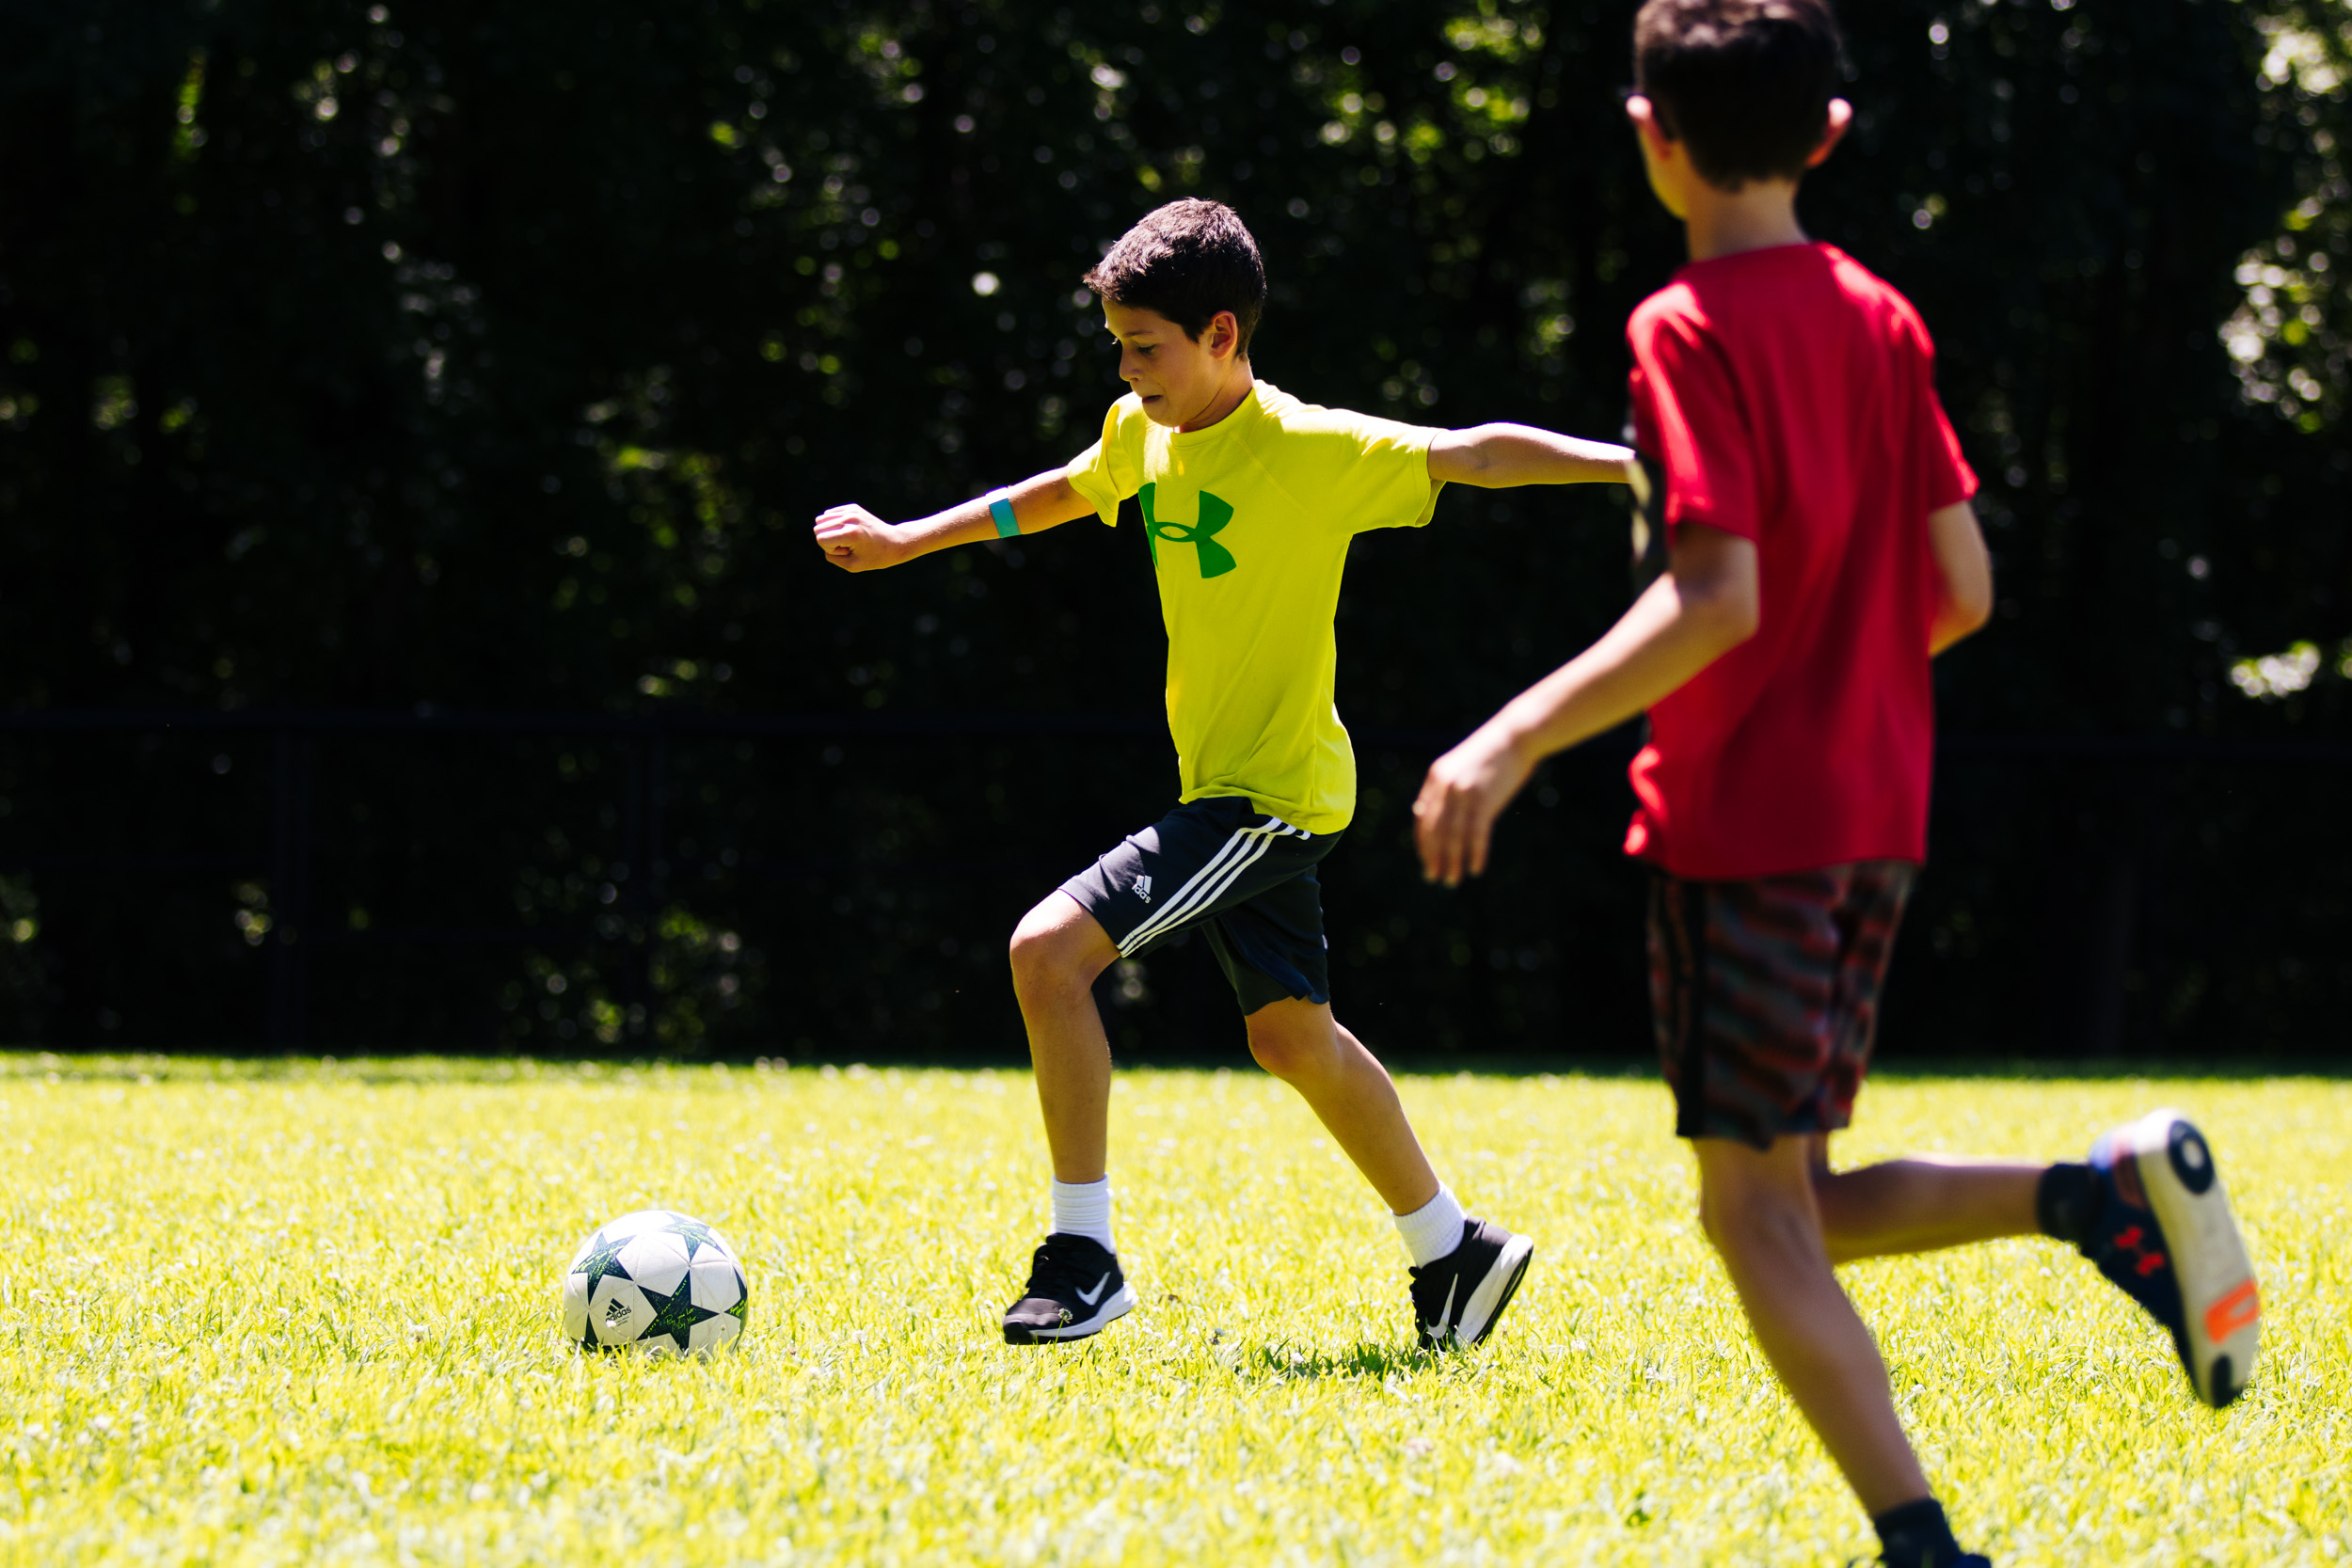 Two campers playing soccer outside